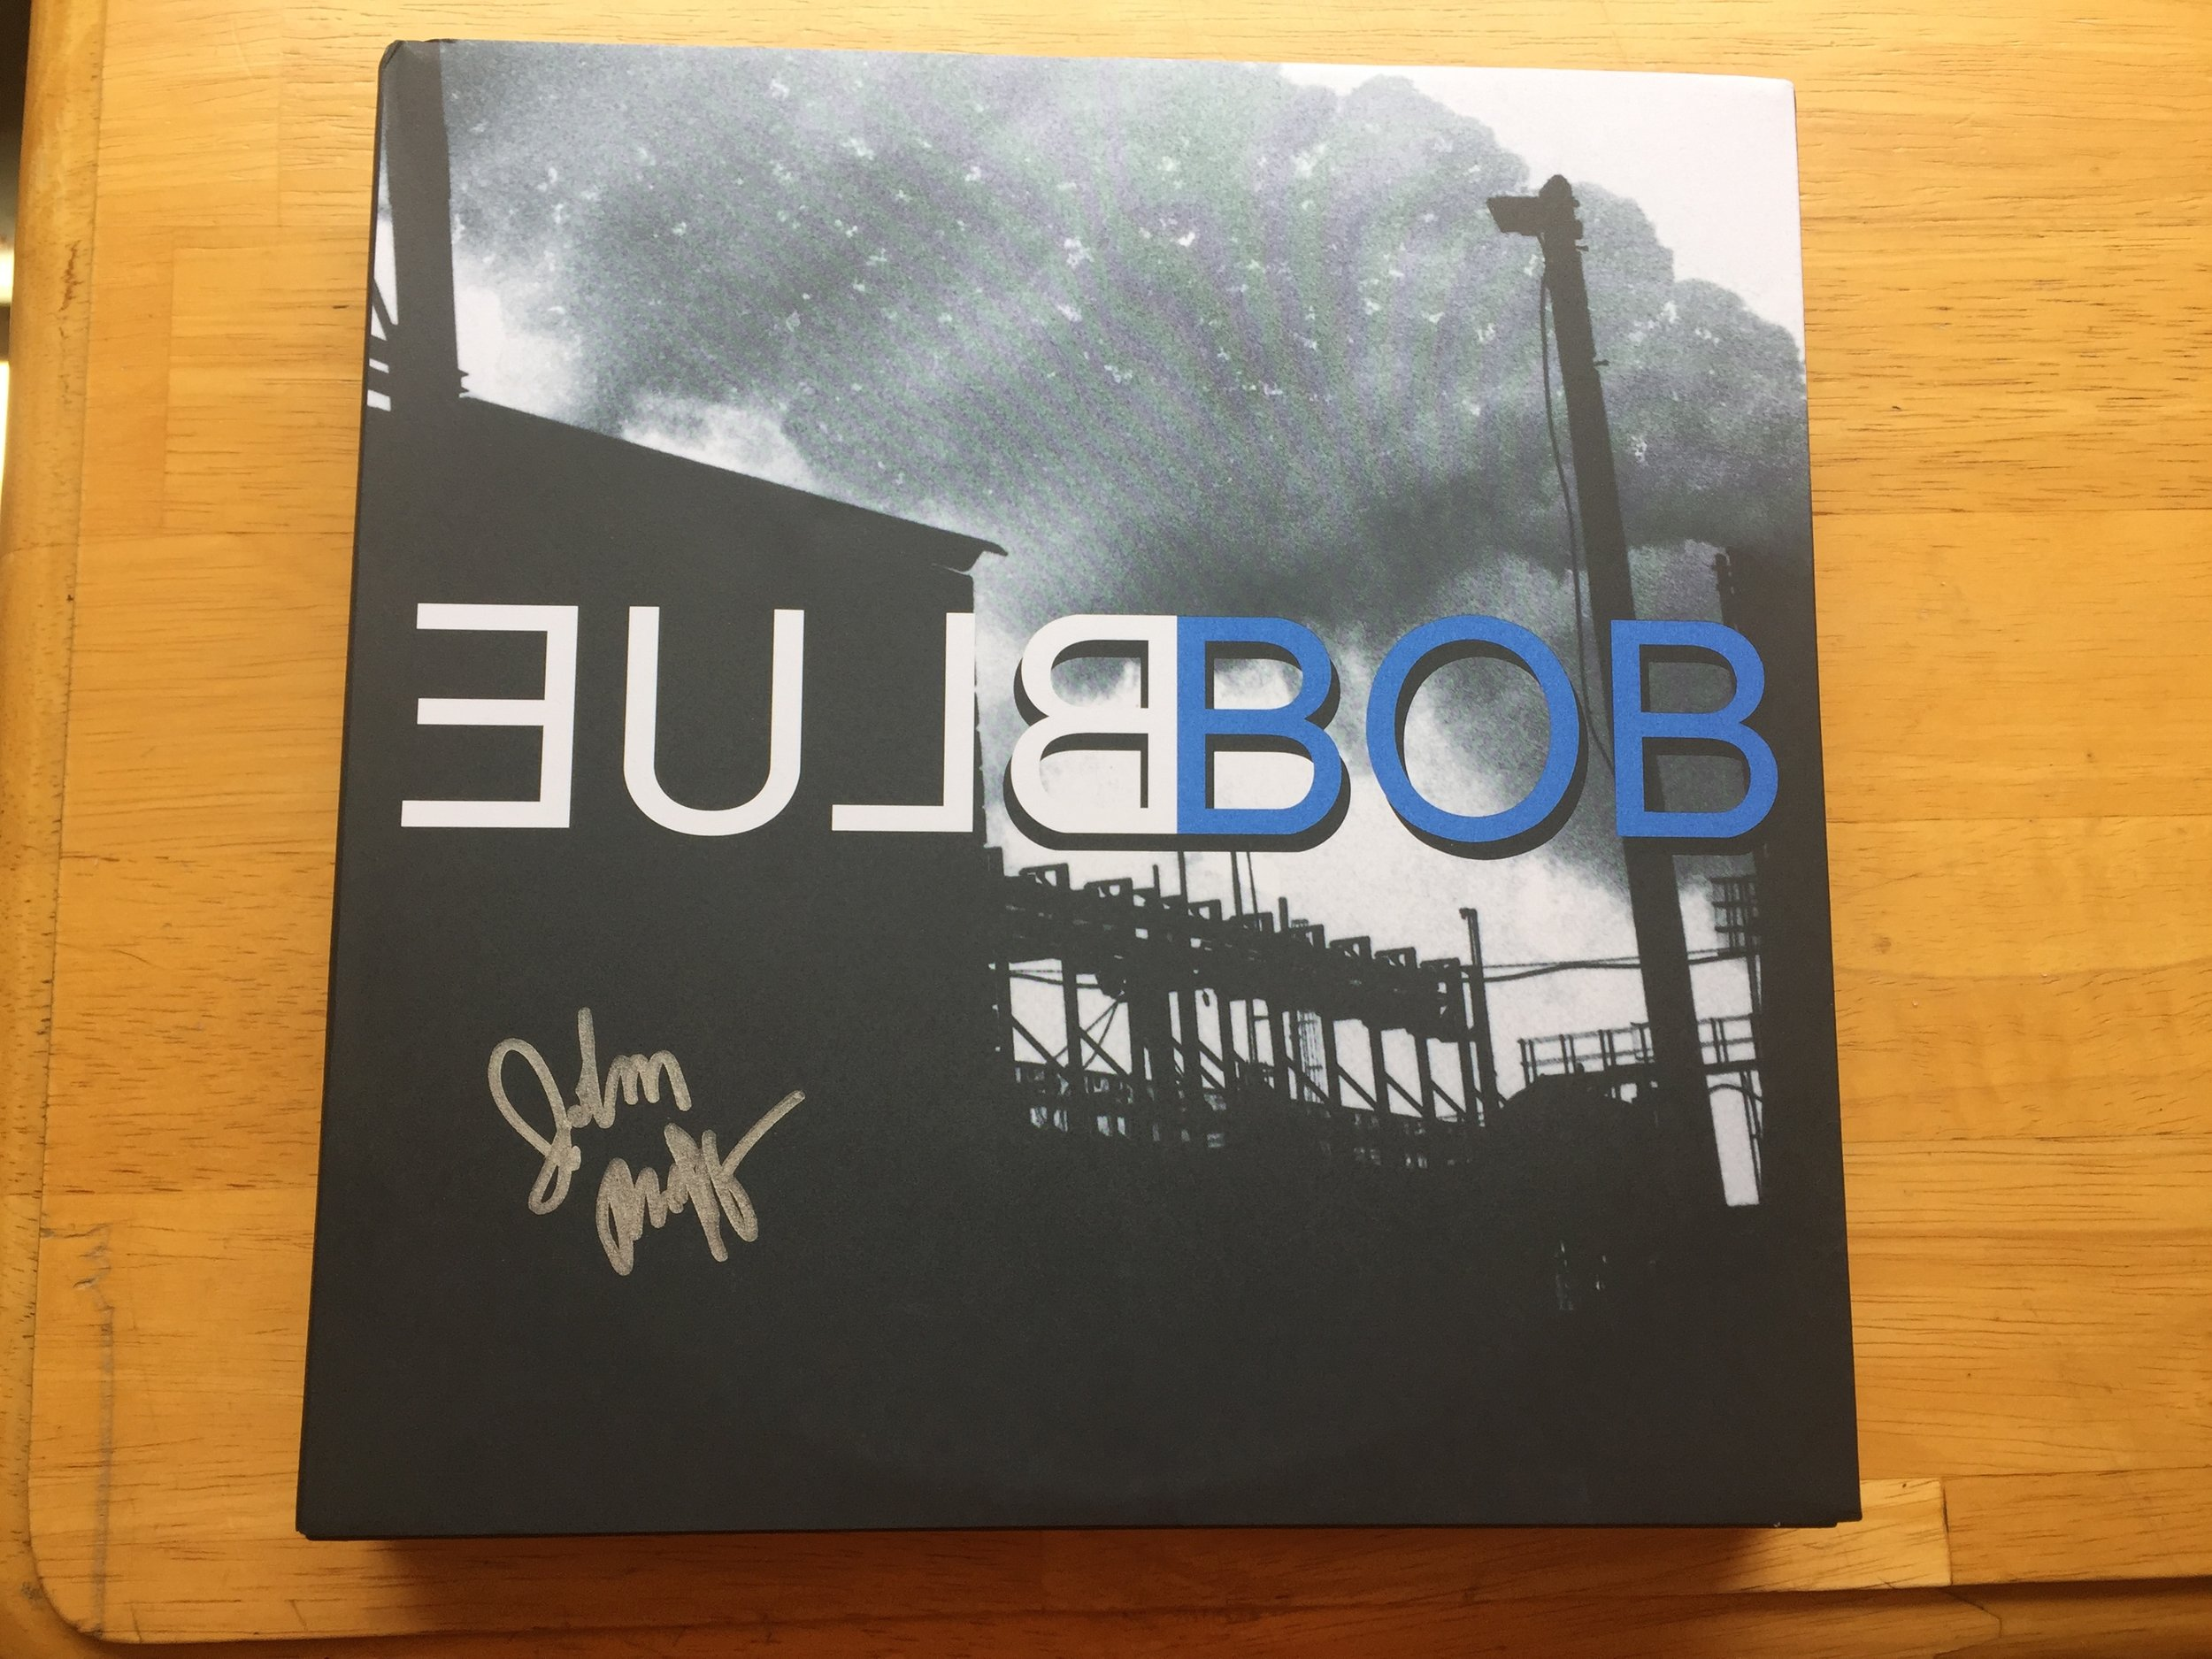 John Thorne is an incredible musician and sound mixer. I'm excited to own this limited edition of Blue Bob.